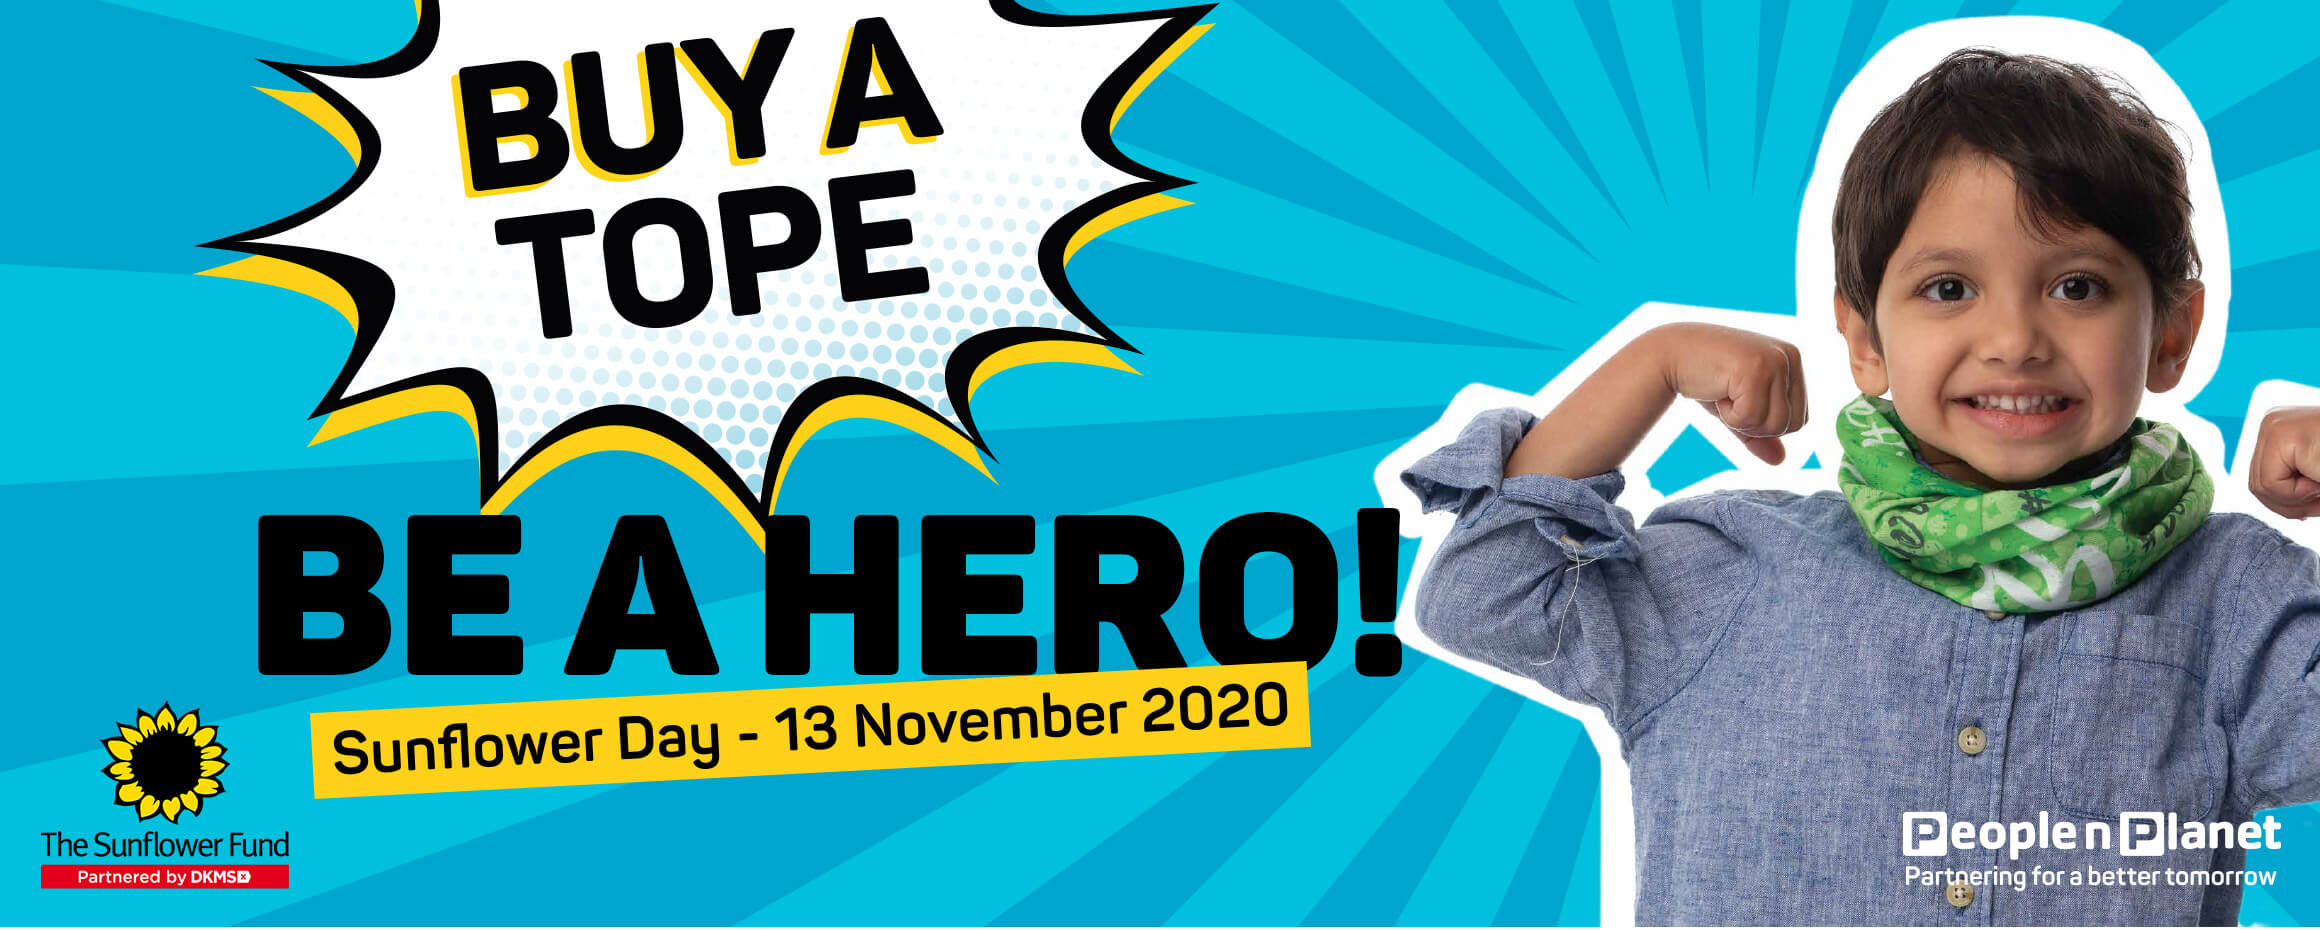 Buy a tope be a hero